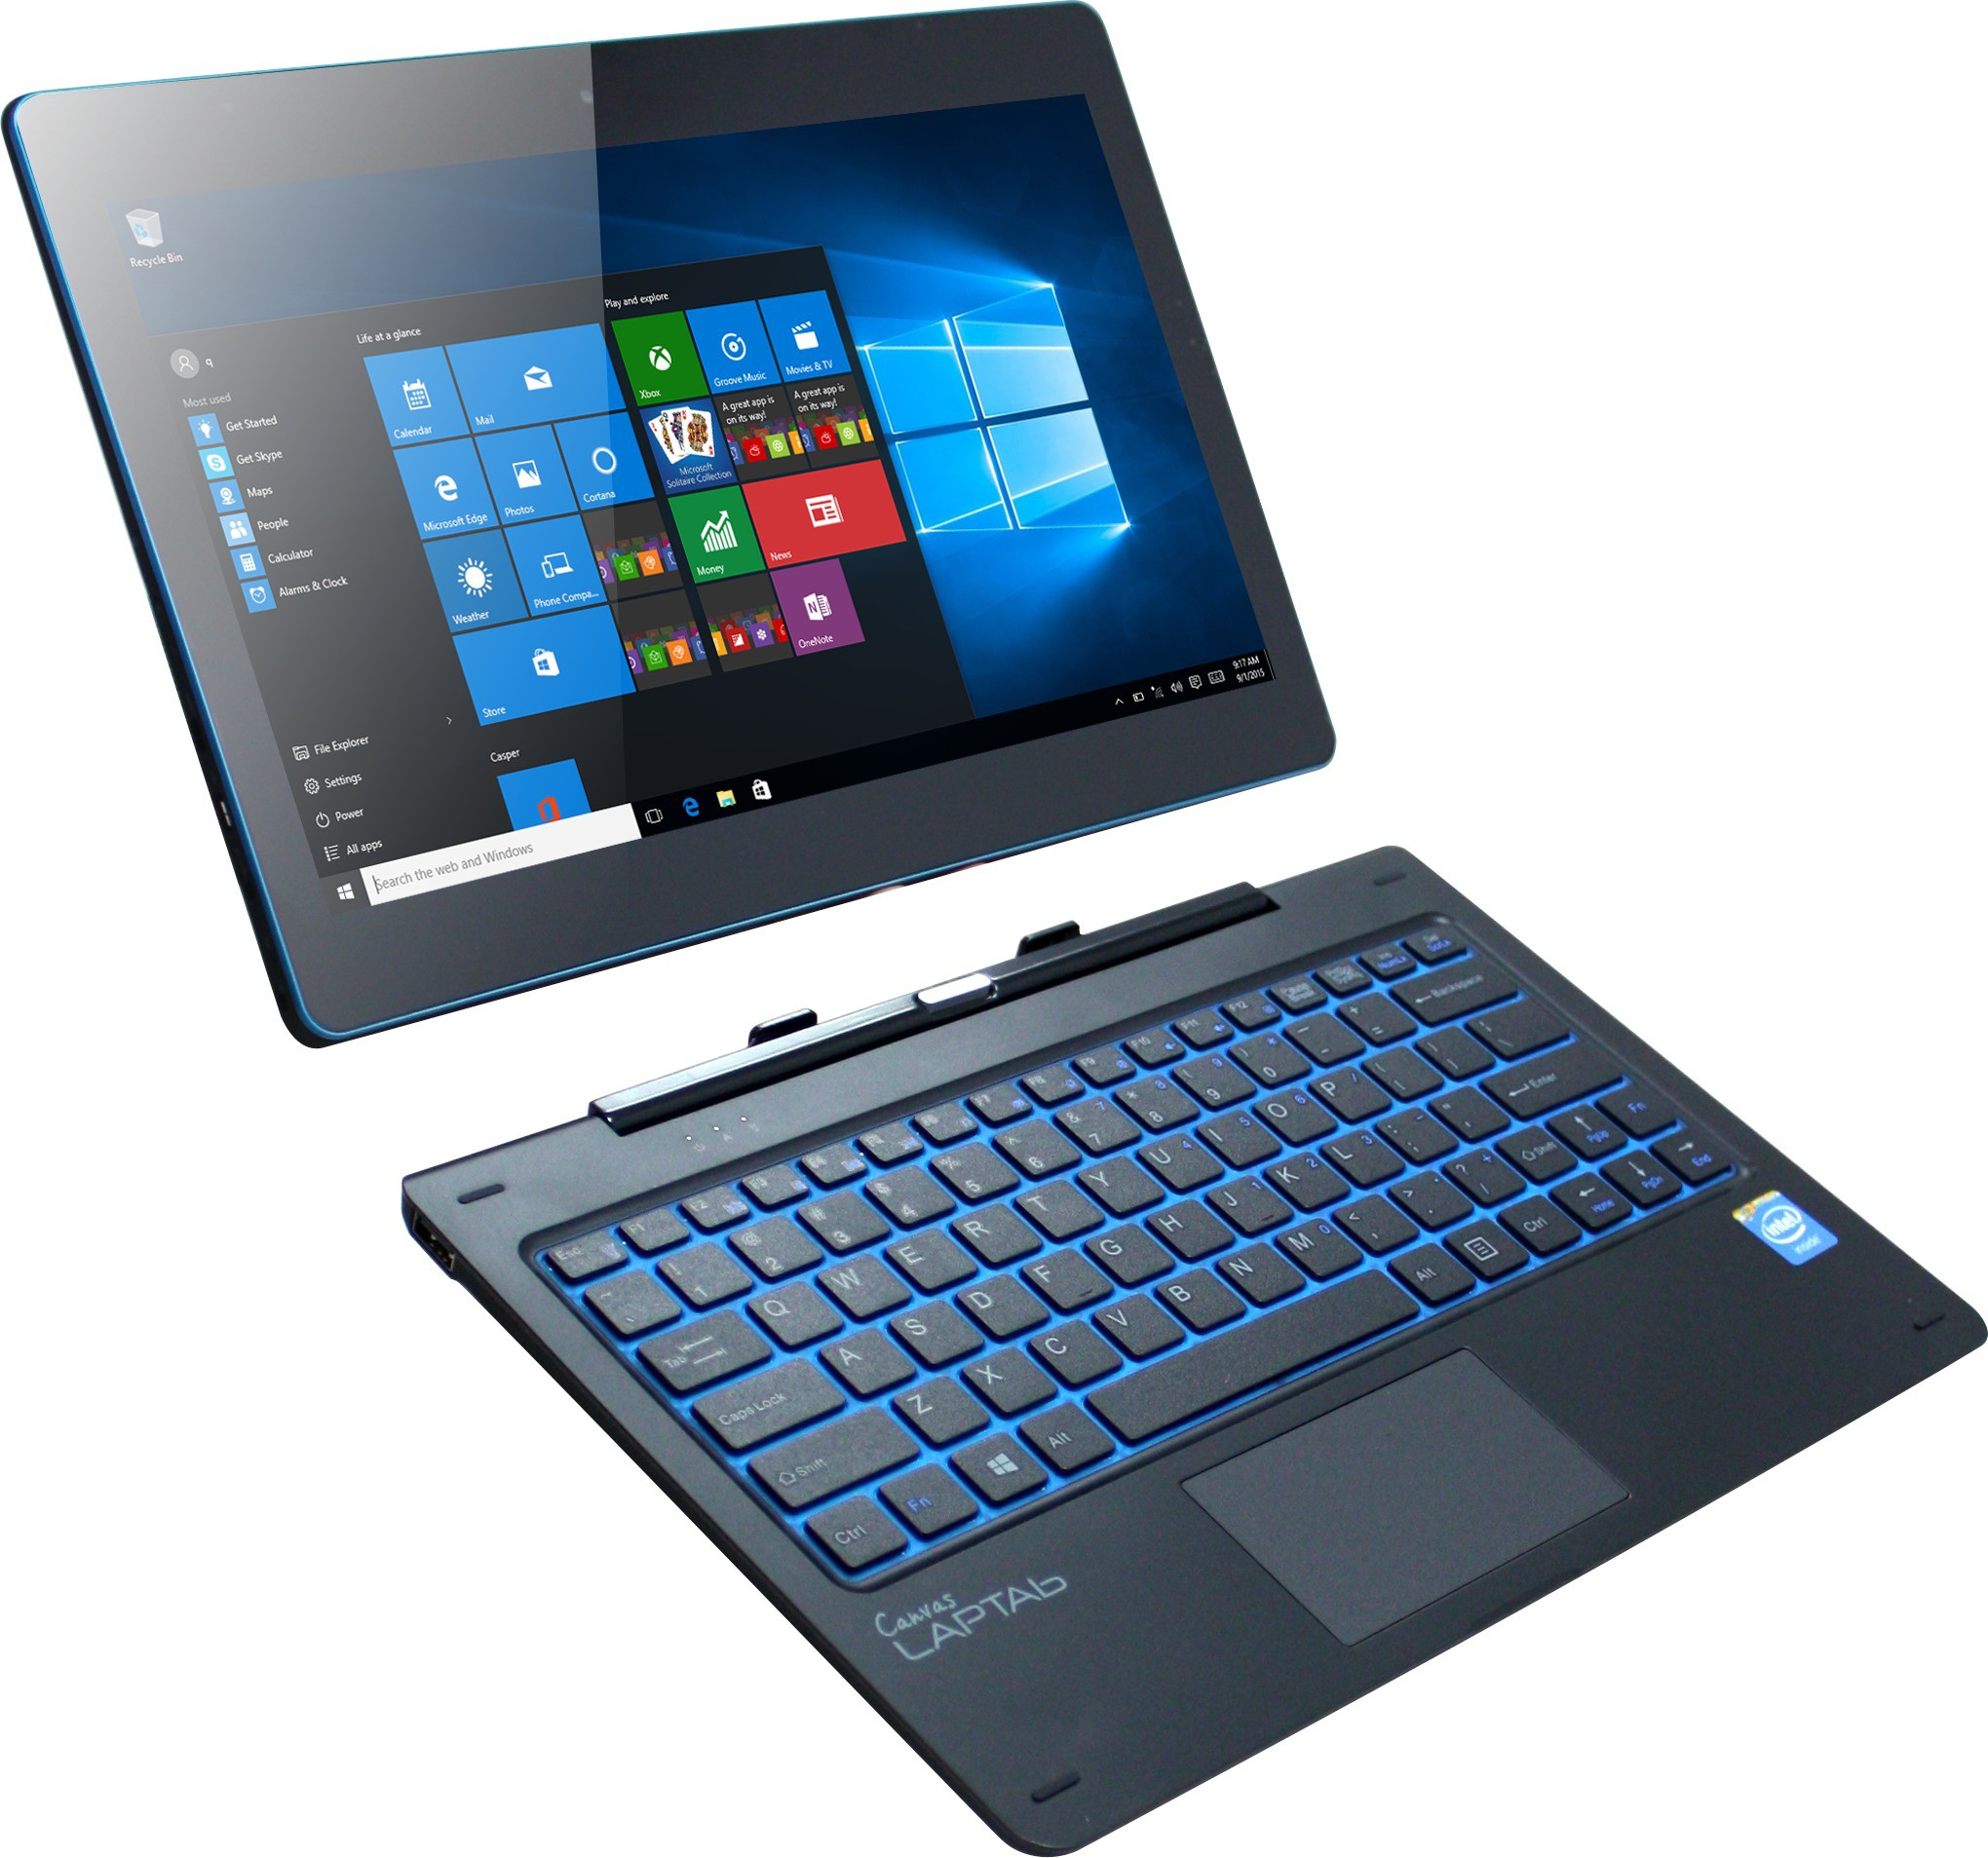 Deals - Raipur - From ₹ 10999 <br> Micromax Laptops<br> Category - computers<br> Business - Flipkart.com